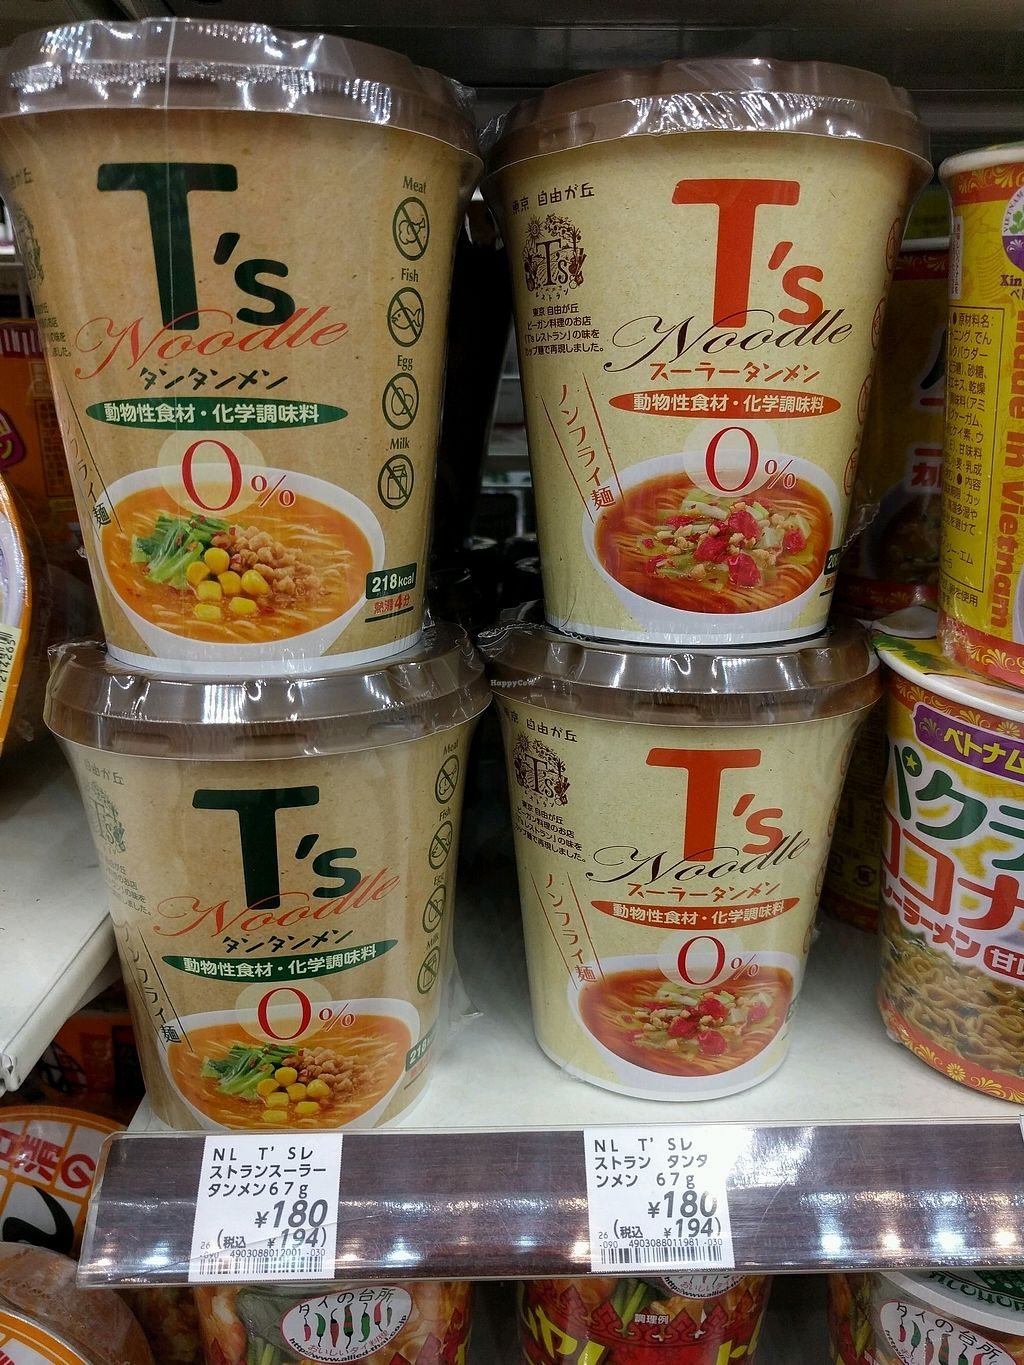 """Photo of Natural Lawson - Chiyoda Shibancho  by <a href=""""/members/profile/EnricoVegan"""">EnricoVegan</a> <br/>T's noodles are vegan. The taste is okay, but not great <br/> November 14, 2017  - <a href='/contact/abuse/image/93279/325438'>Report</a>"""